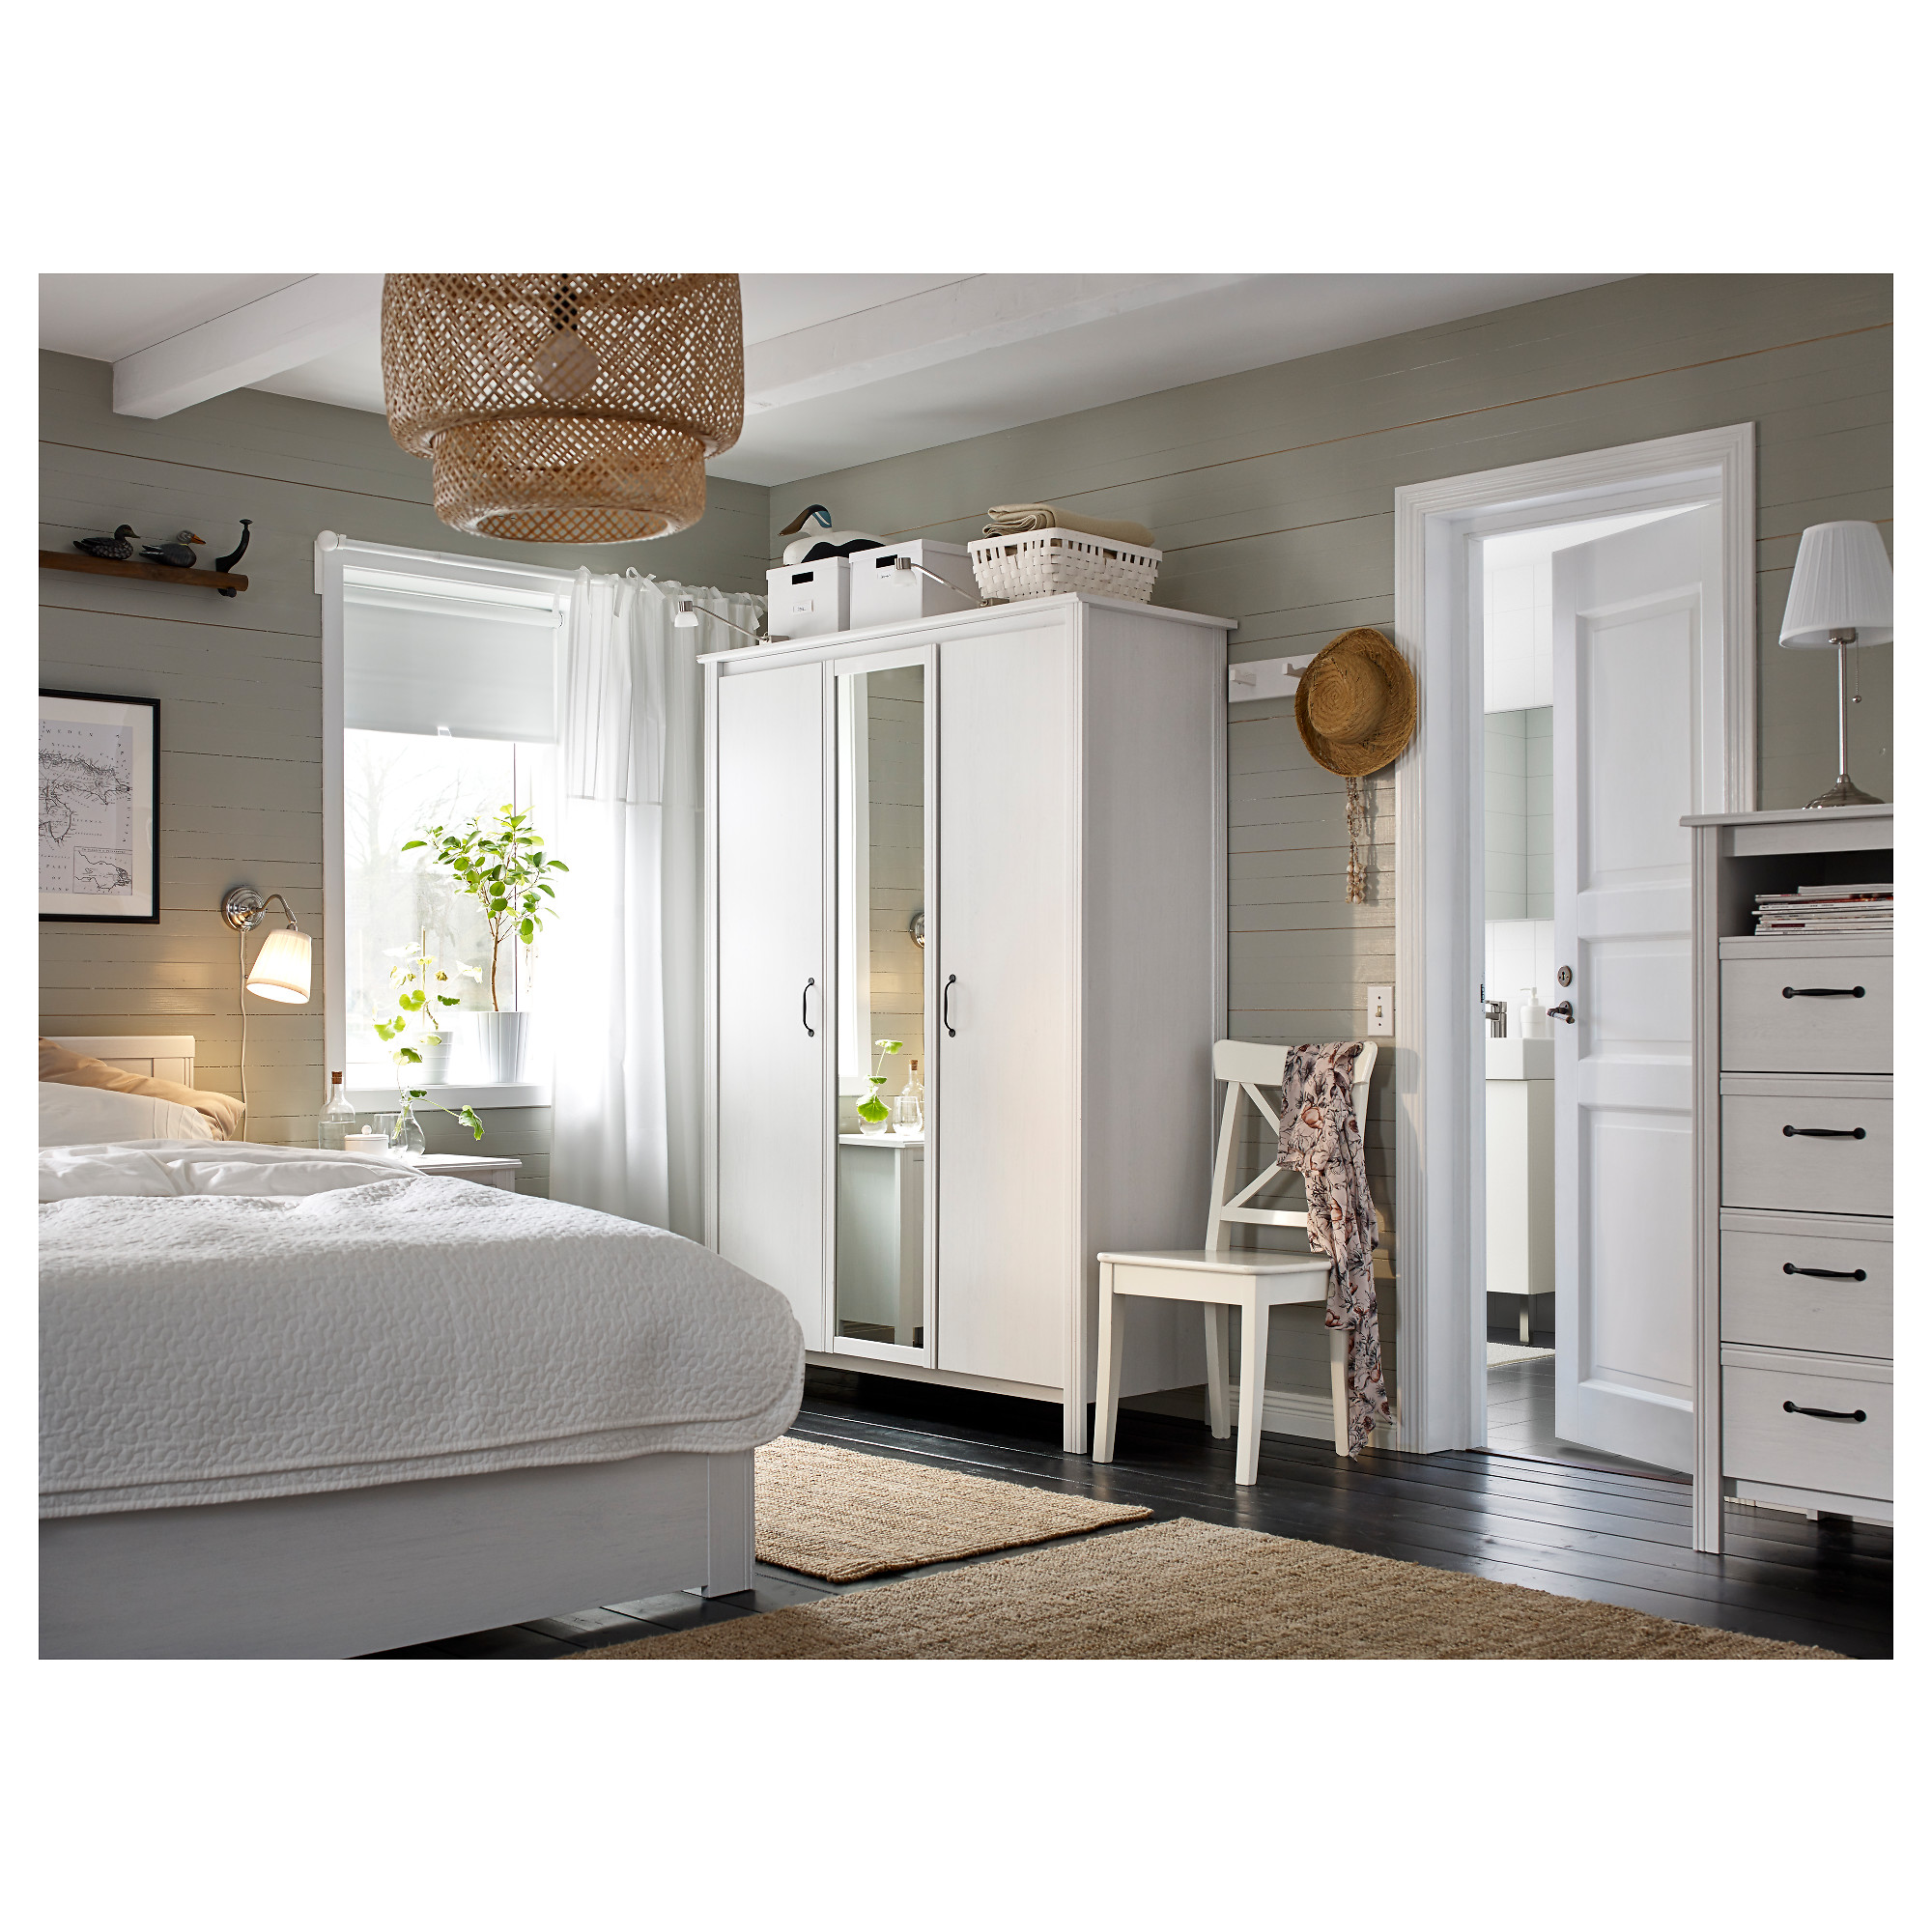 Bedroom Ideas Ikea brusali wardrobe with 3 doors - white - ikea